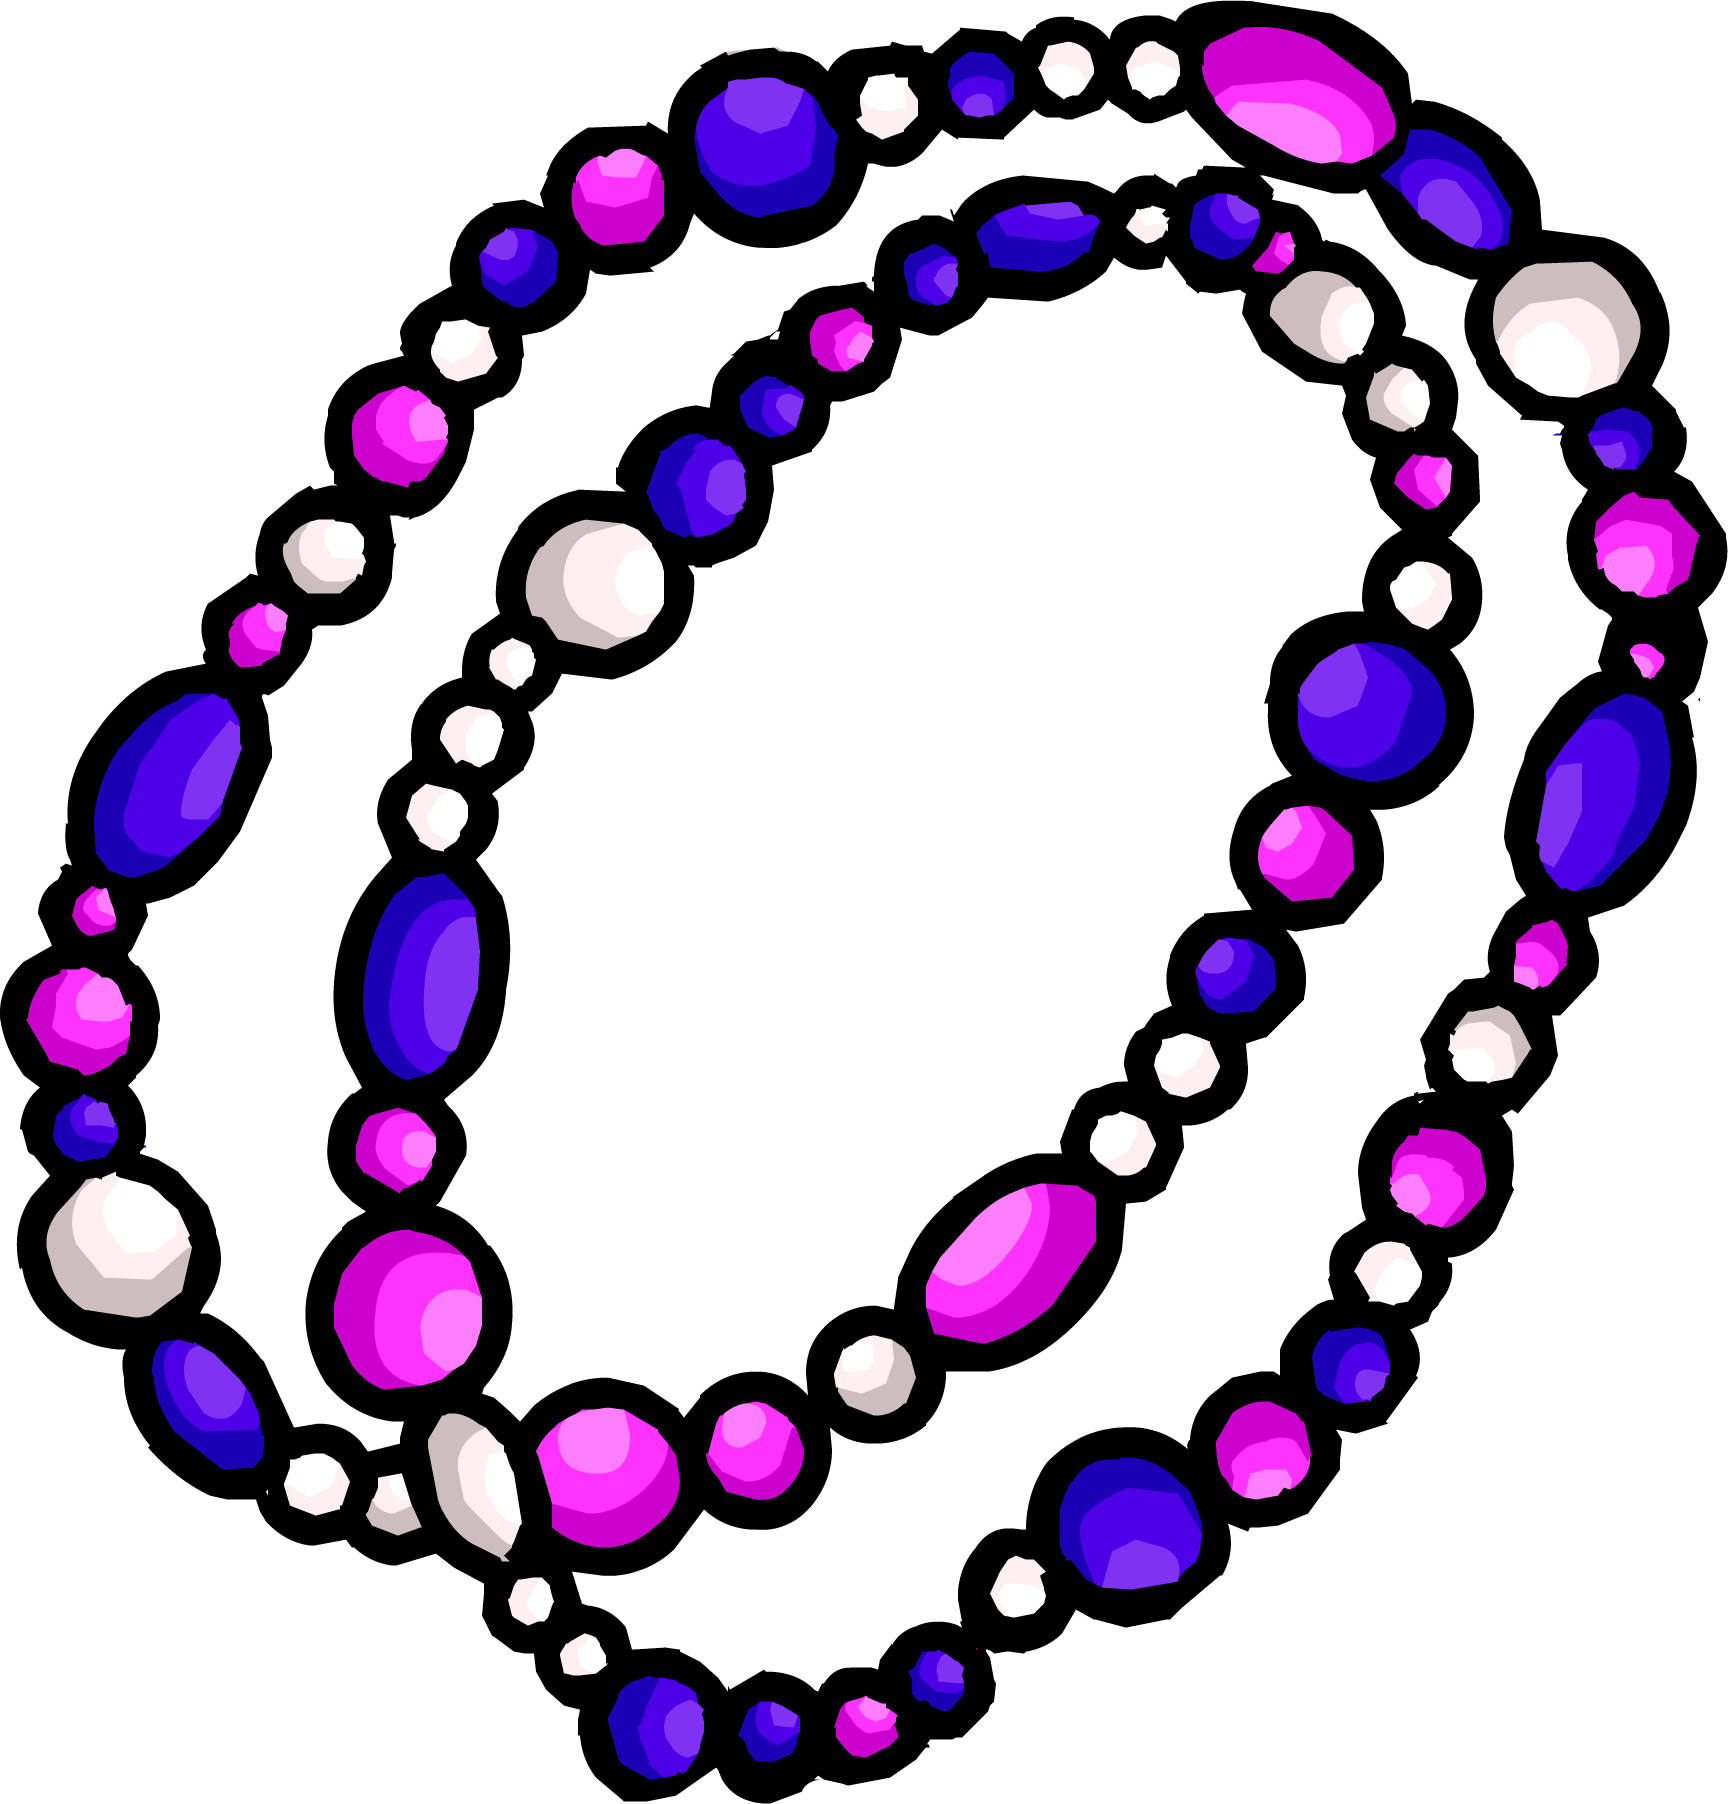 Bead free download best. Necklace clipart closed neck